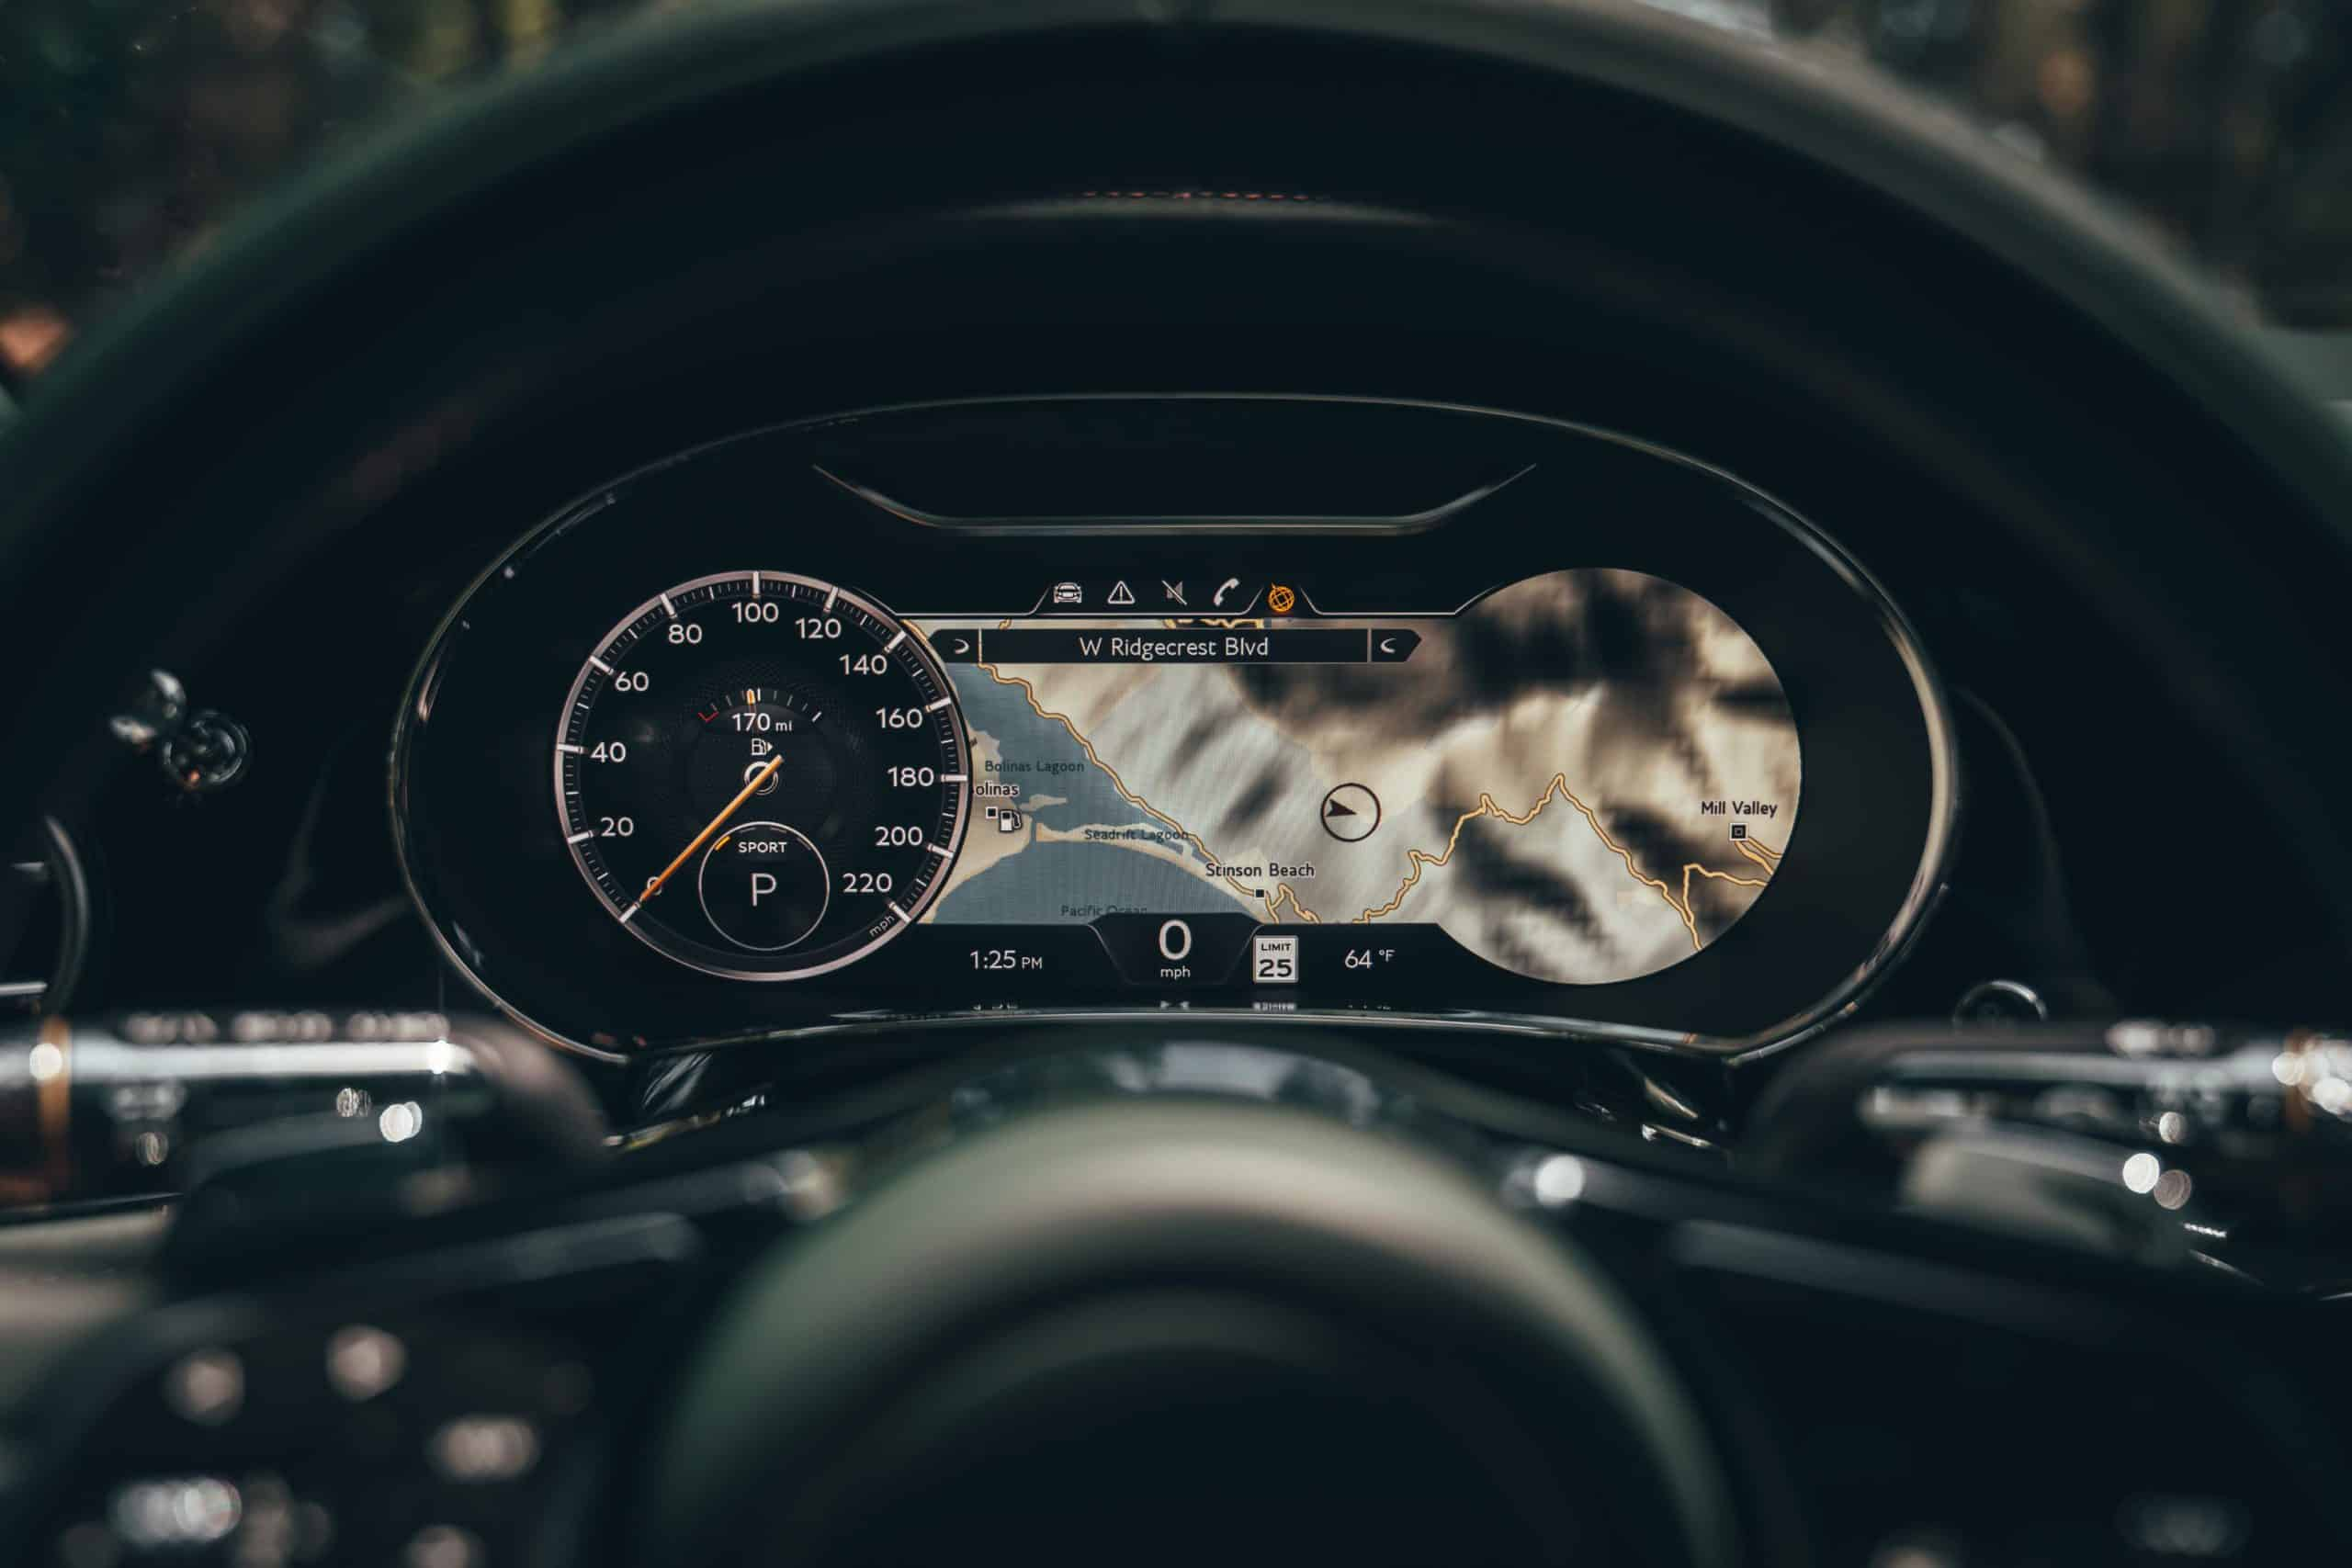 The Human Machine Interface team brings the Bentley Design to screens